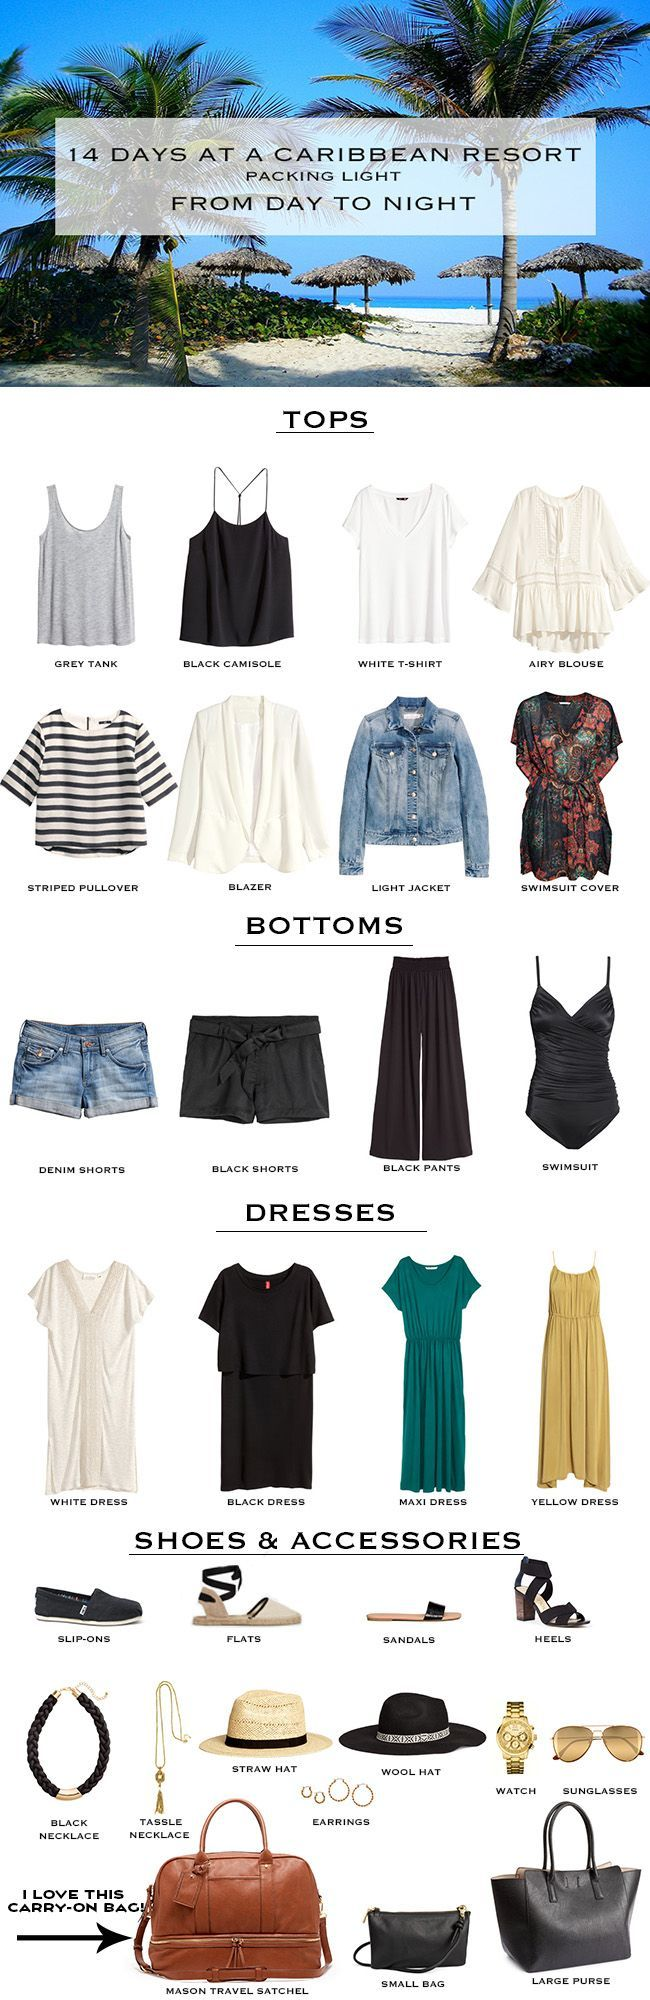 12 Caribbean vacation outfits ideas for women - Page 10 of 13 - summervacationsin.com